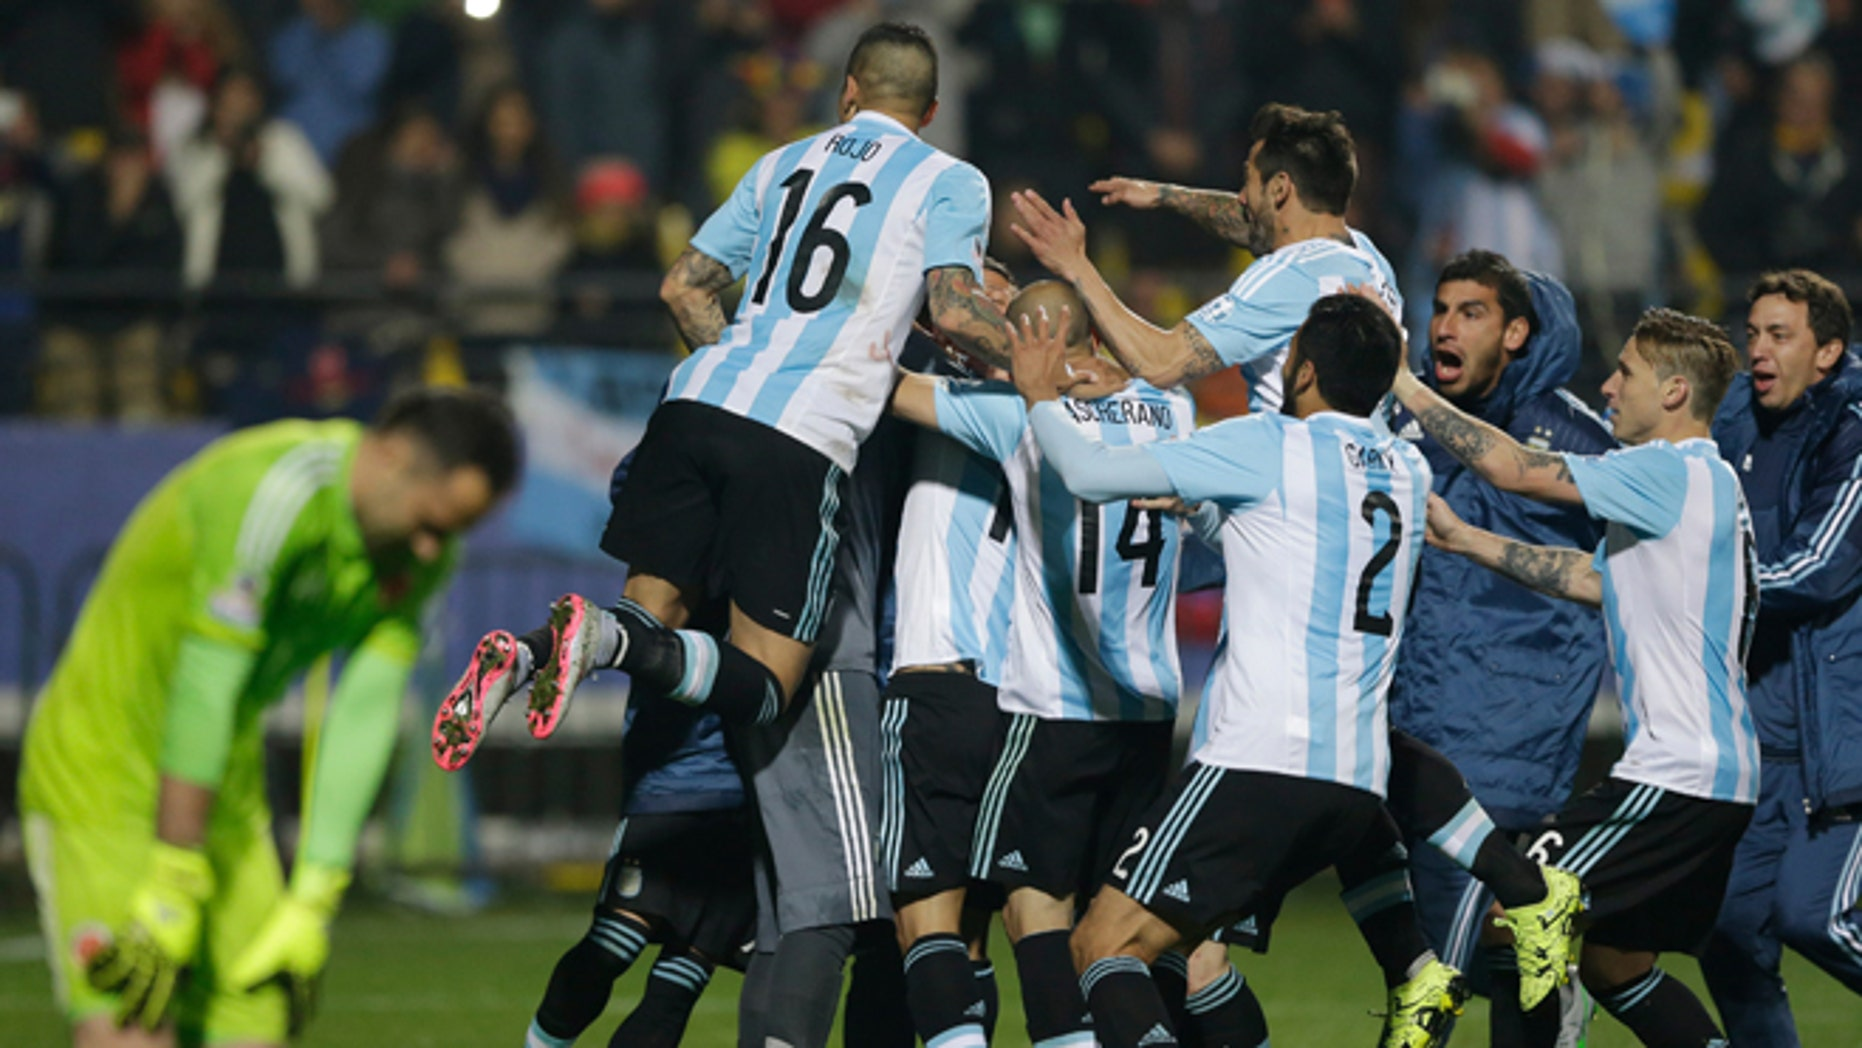 Argentina's players jump over Carlos Tevez after scored the winning penalty kick against Colombia during a Copa America quarterfinal soccer match at the Sausalito Stadium in Vina del Mar, Chile, Friday, June 26, 2015. (AP Photo/Ricardo Mazalan)